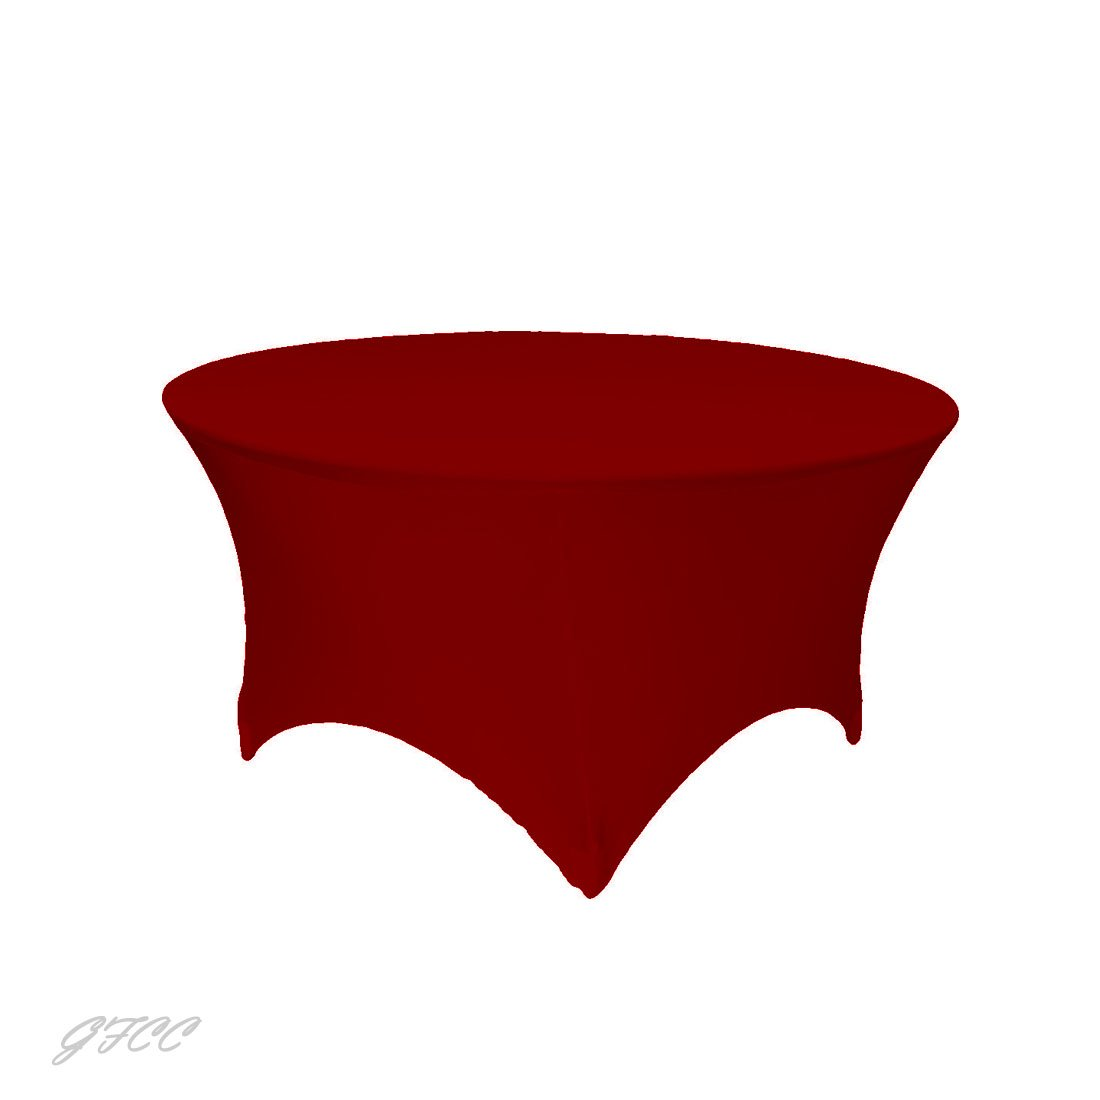 GFCC 3FT Table Red Round Stretch Tablecloth for Wedding Party Restaurant Decoration